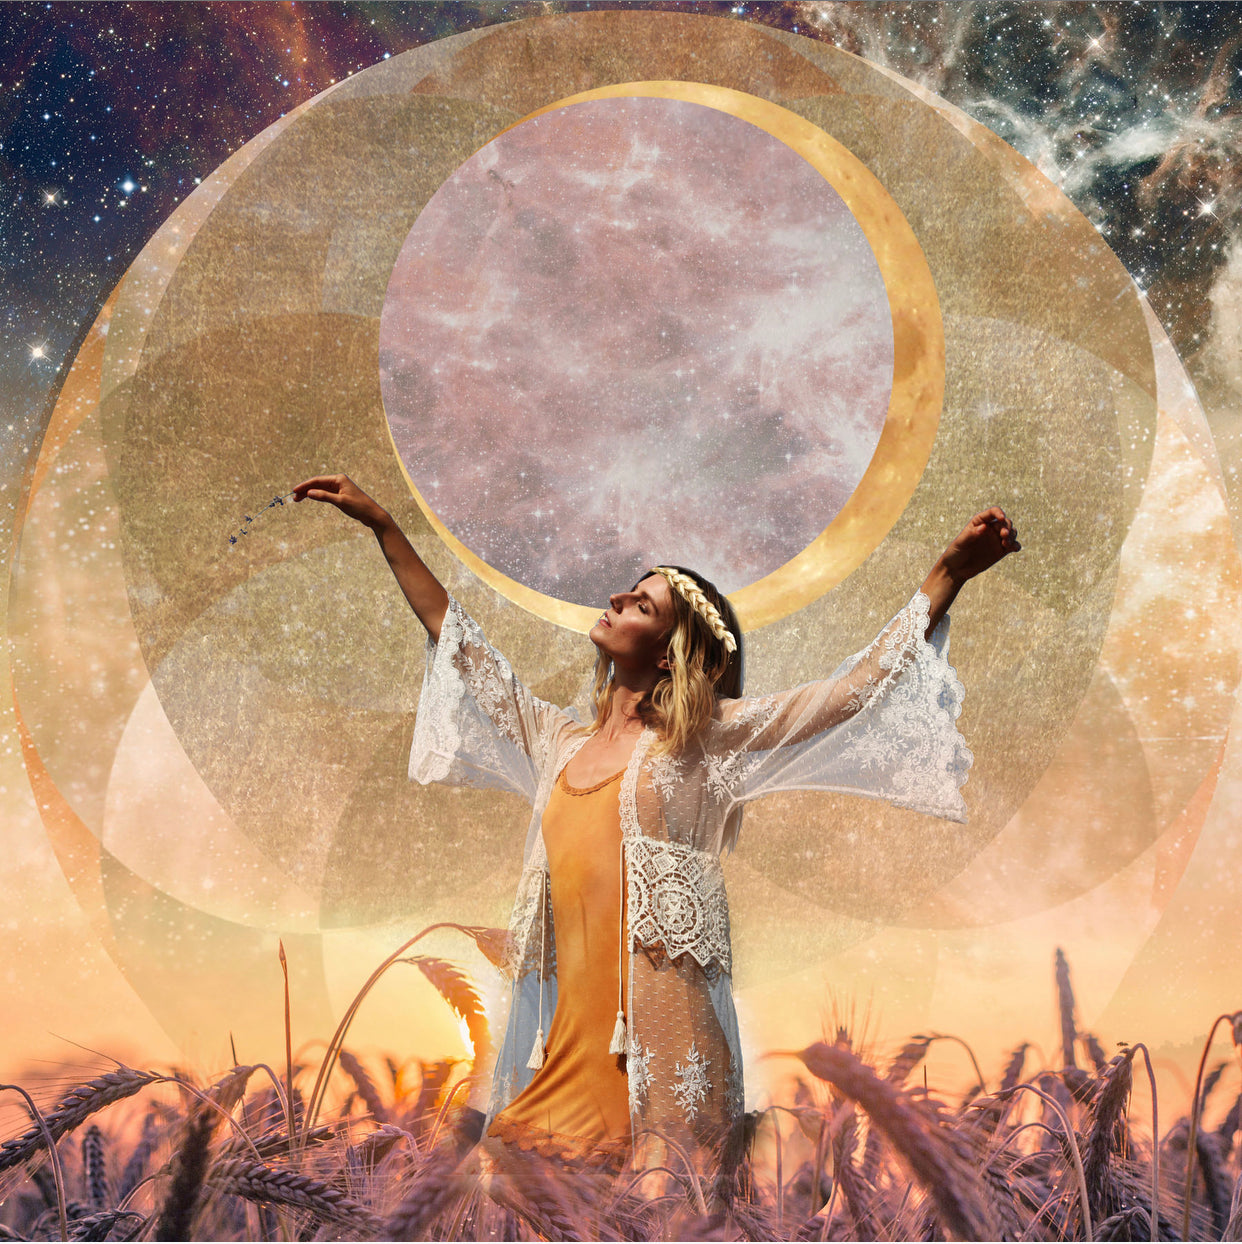 Intuitive Astrology: Super New Moon in Virgo